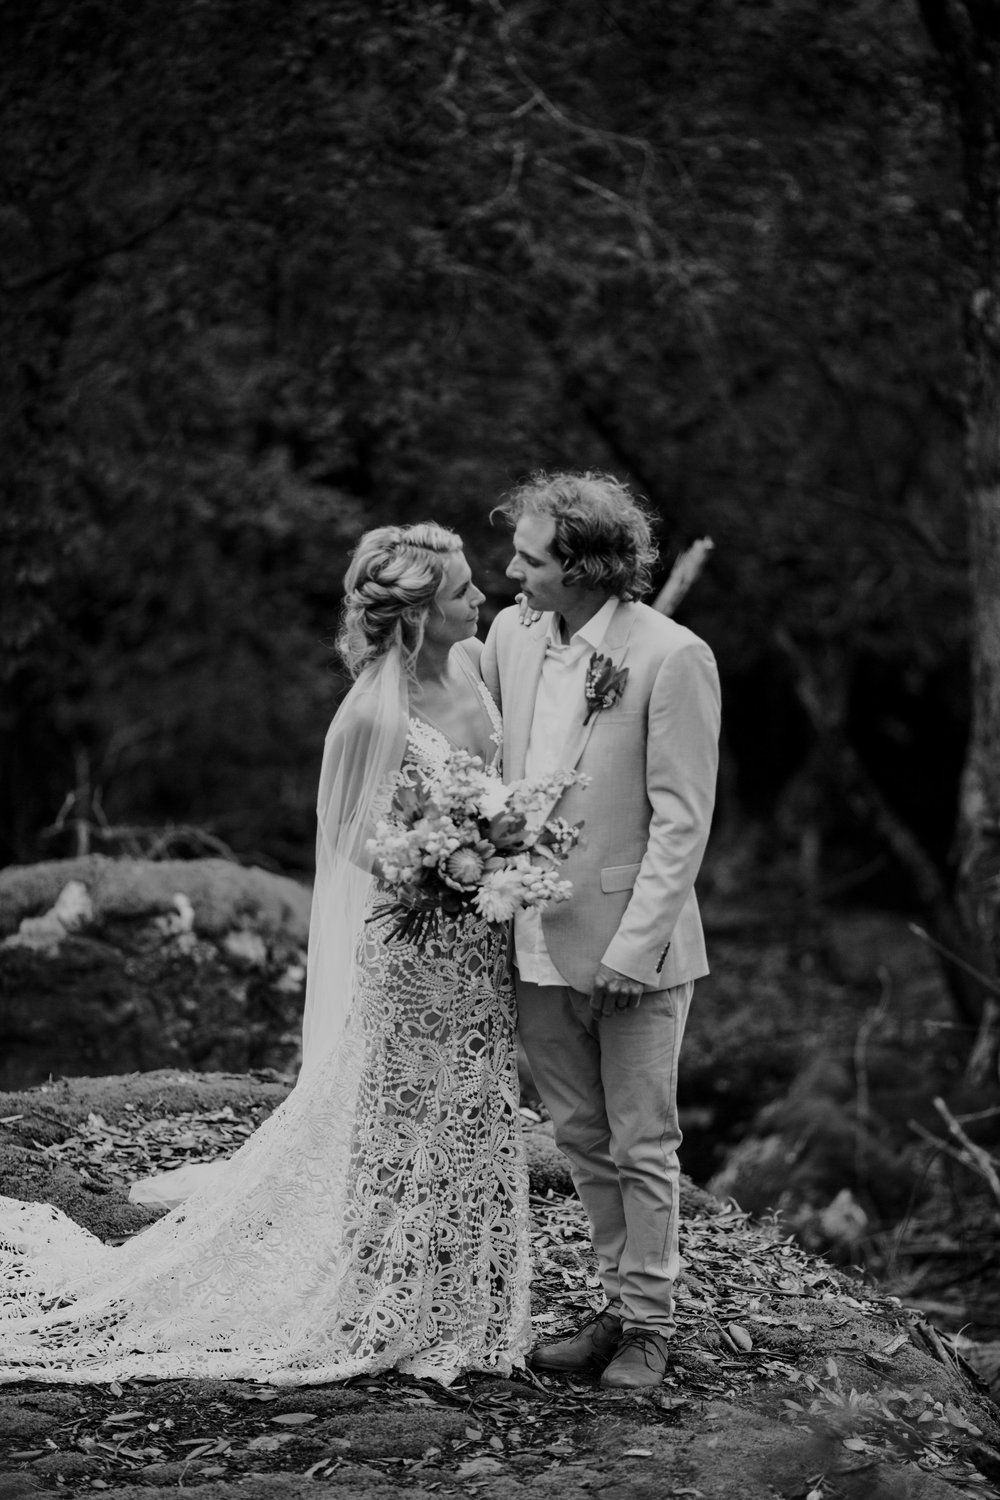 Jesse+Matt+Kangaroo+Valley+Wildwood+Boho+Relaxed+wedding+-141.jpg